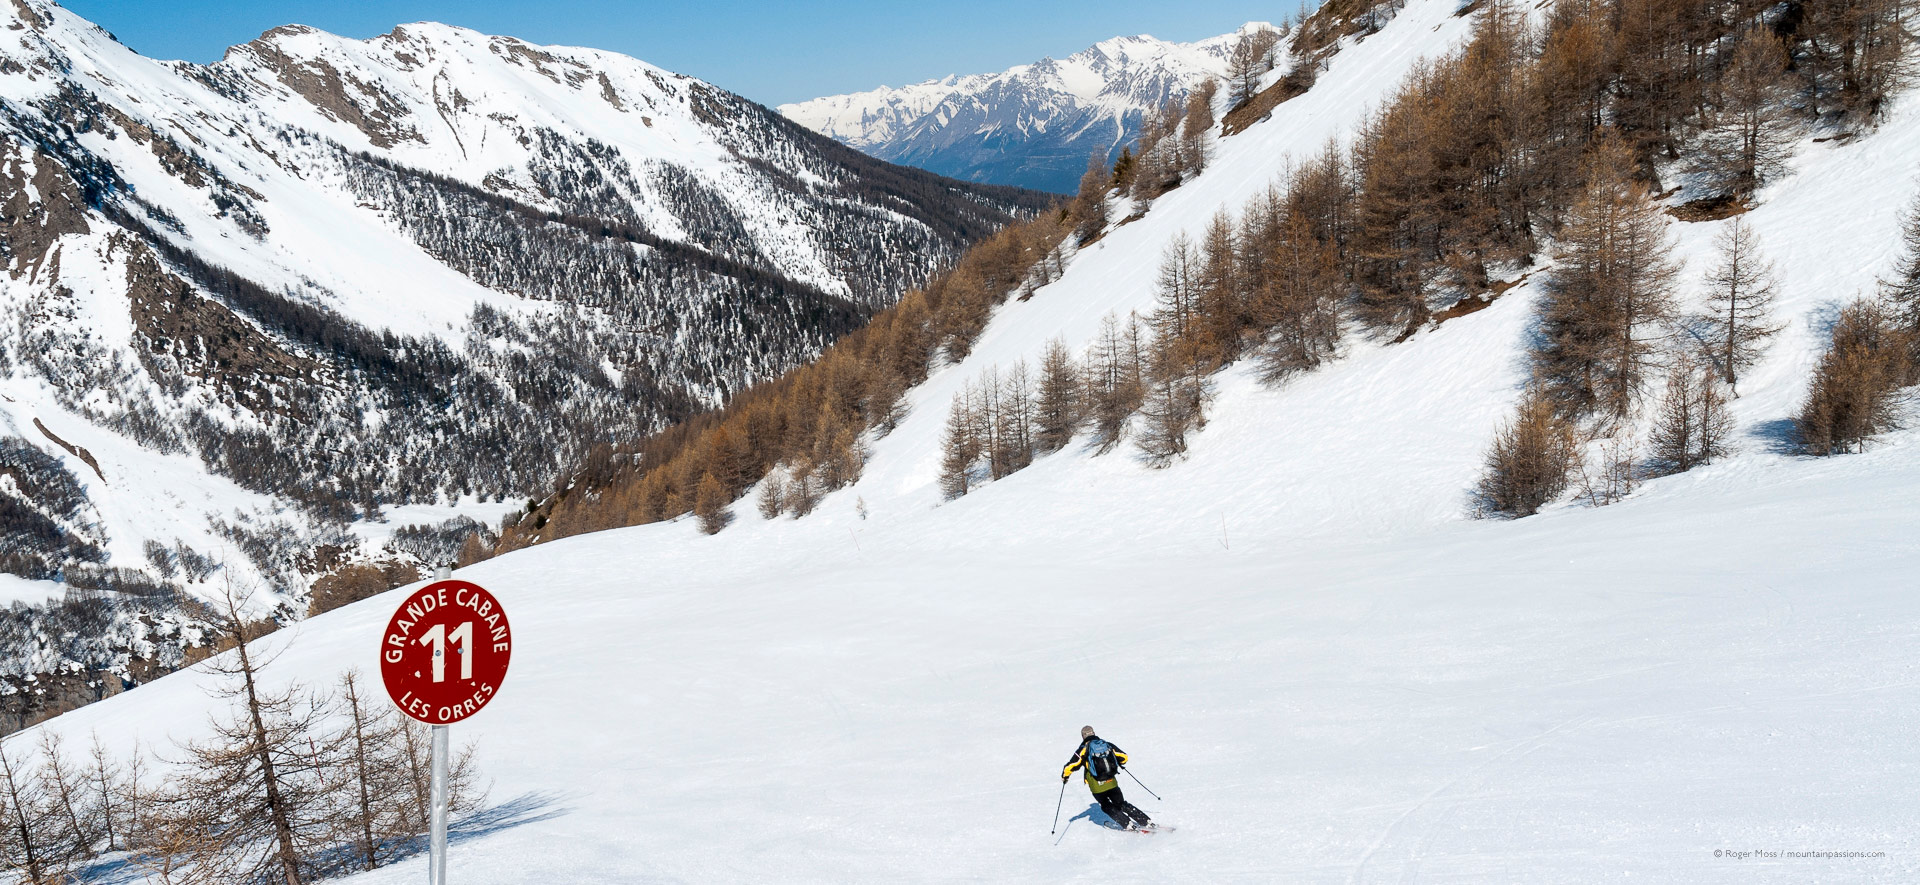 Lone skier descending red piste with beautiful mountain scenery.